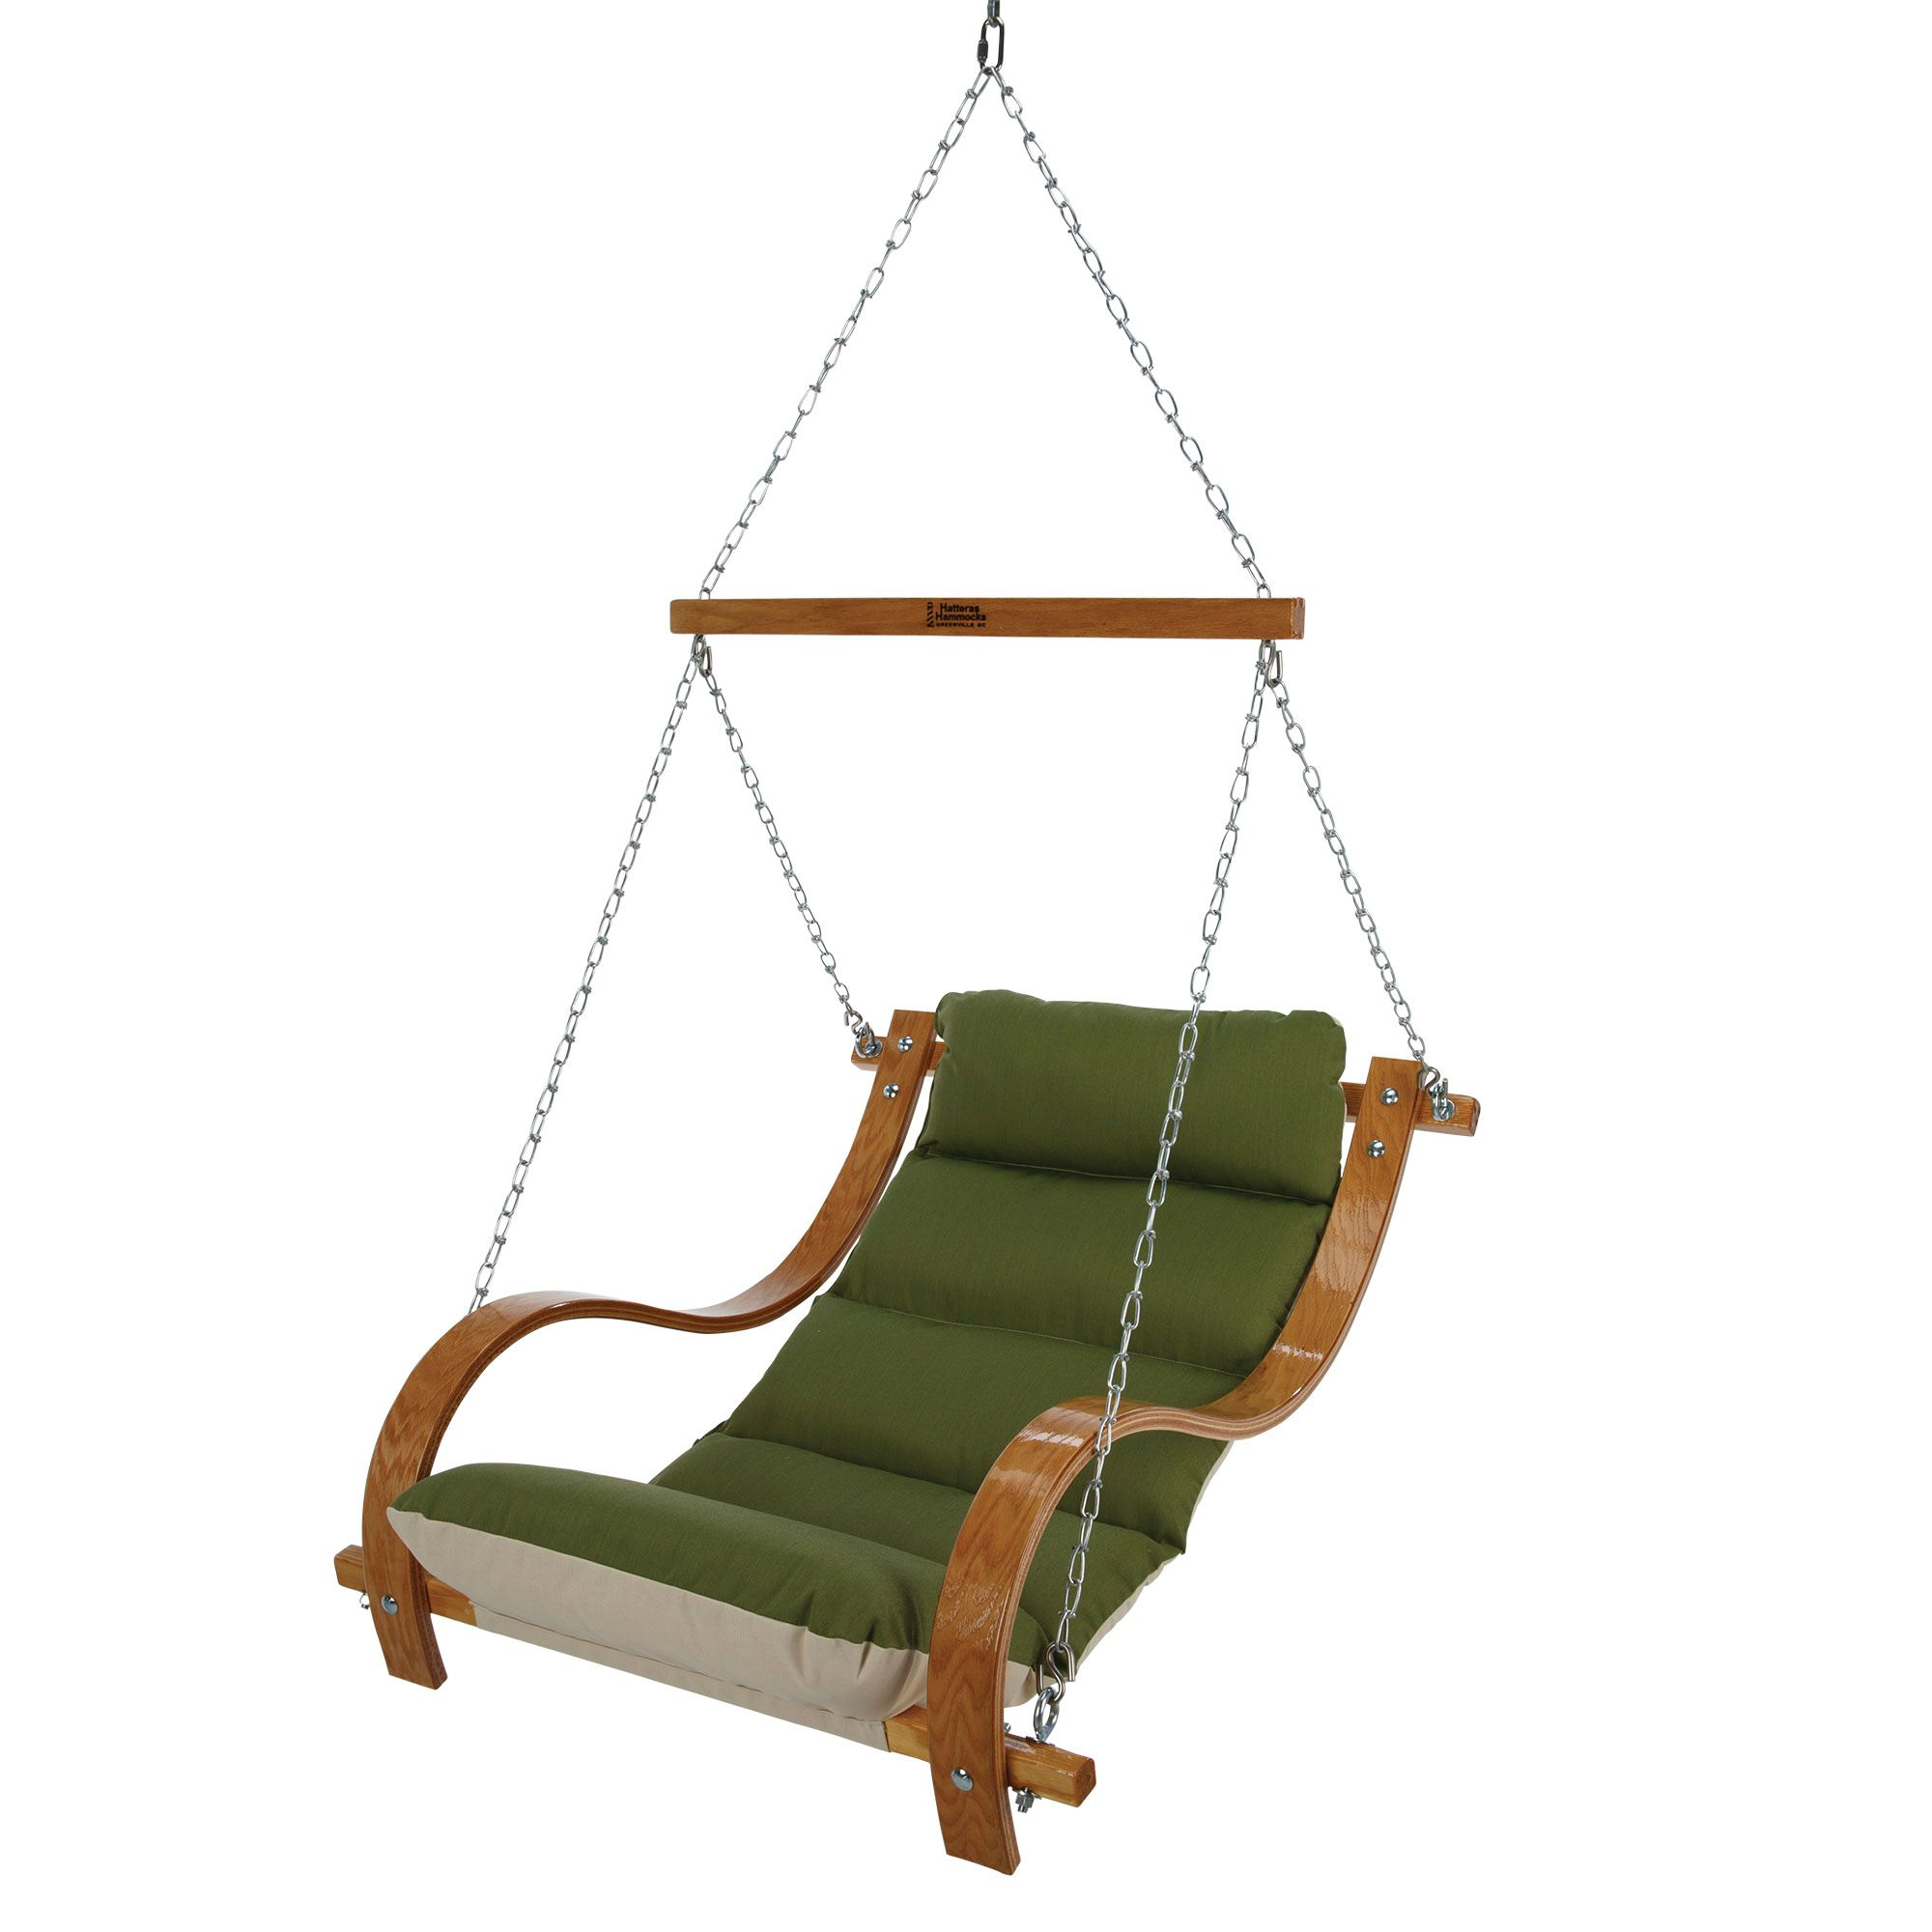 Very best Shop Single Swing with Oak Arms - Hatteras Hammocks; Hammocks  JQ11